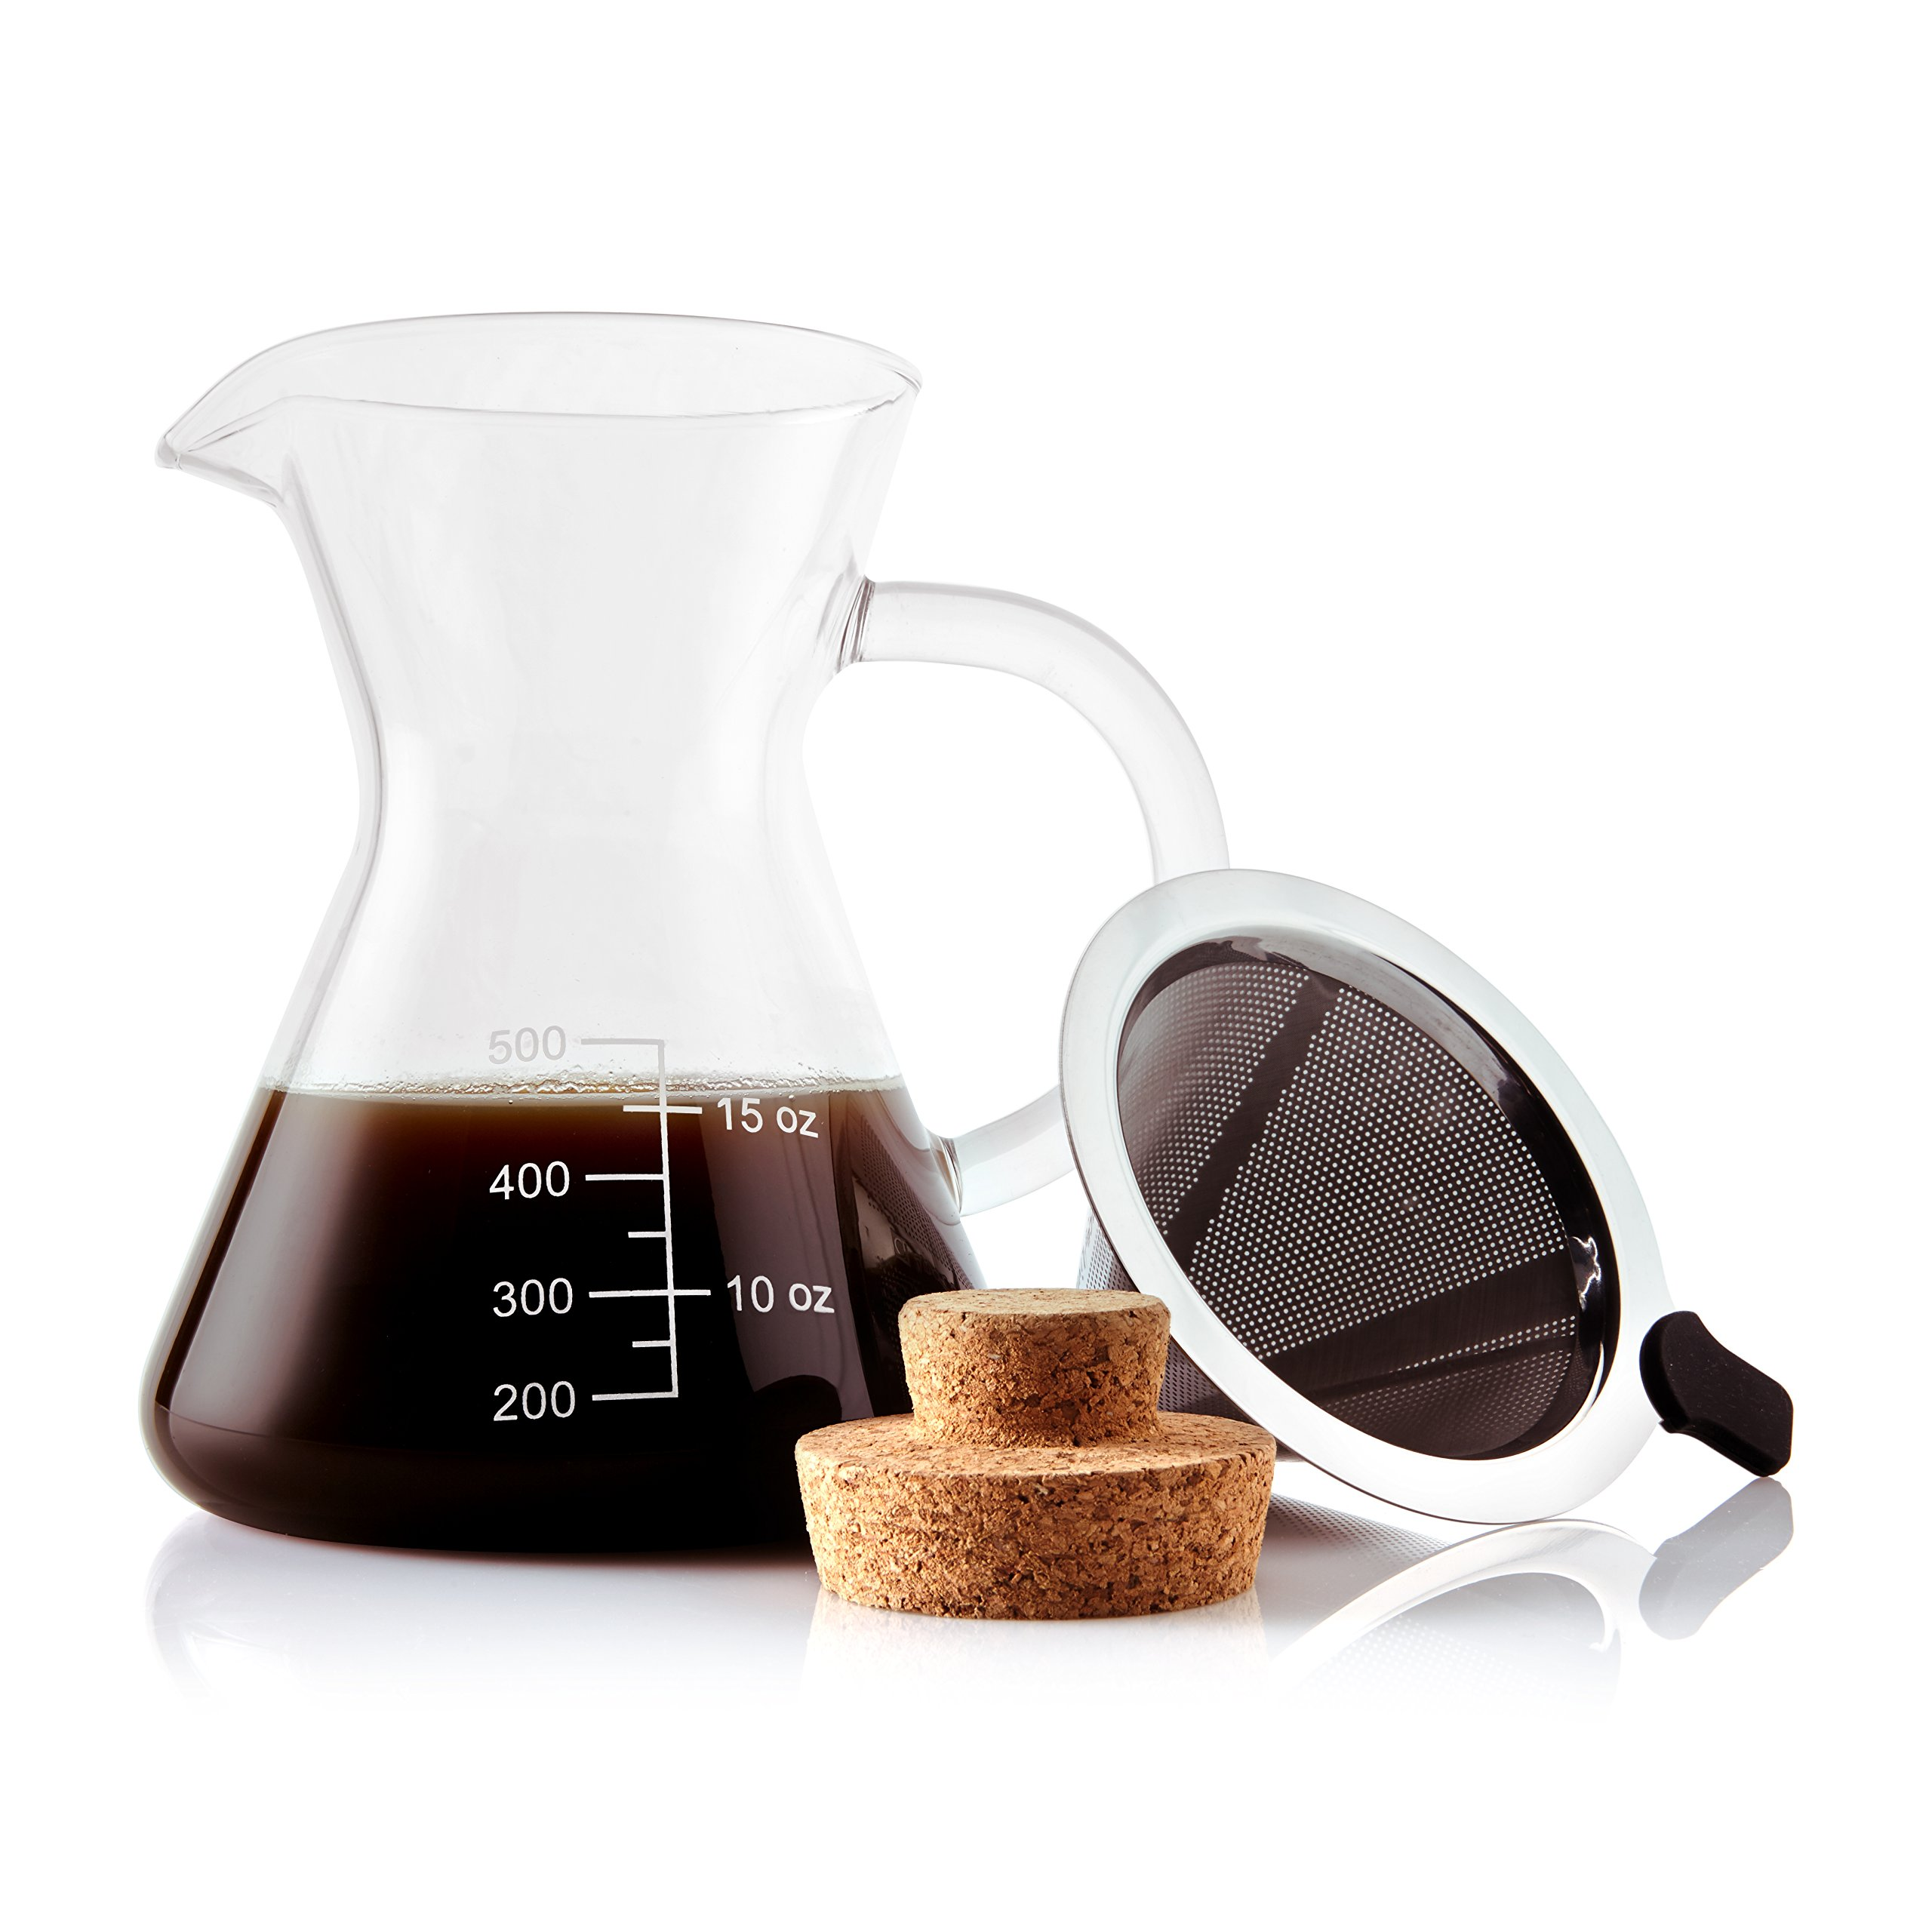 Apace Living Pour Over Coffee Maker Set w/Coffee Scoop and Cork Lid - Elegant Coffee Dripper Pot w/Glass Carafe & Permanent Stainless Steel Filter (400 ml/13.5 oz)